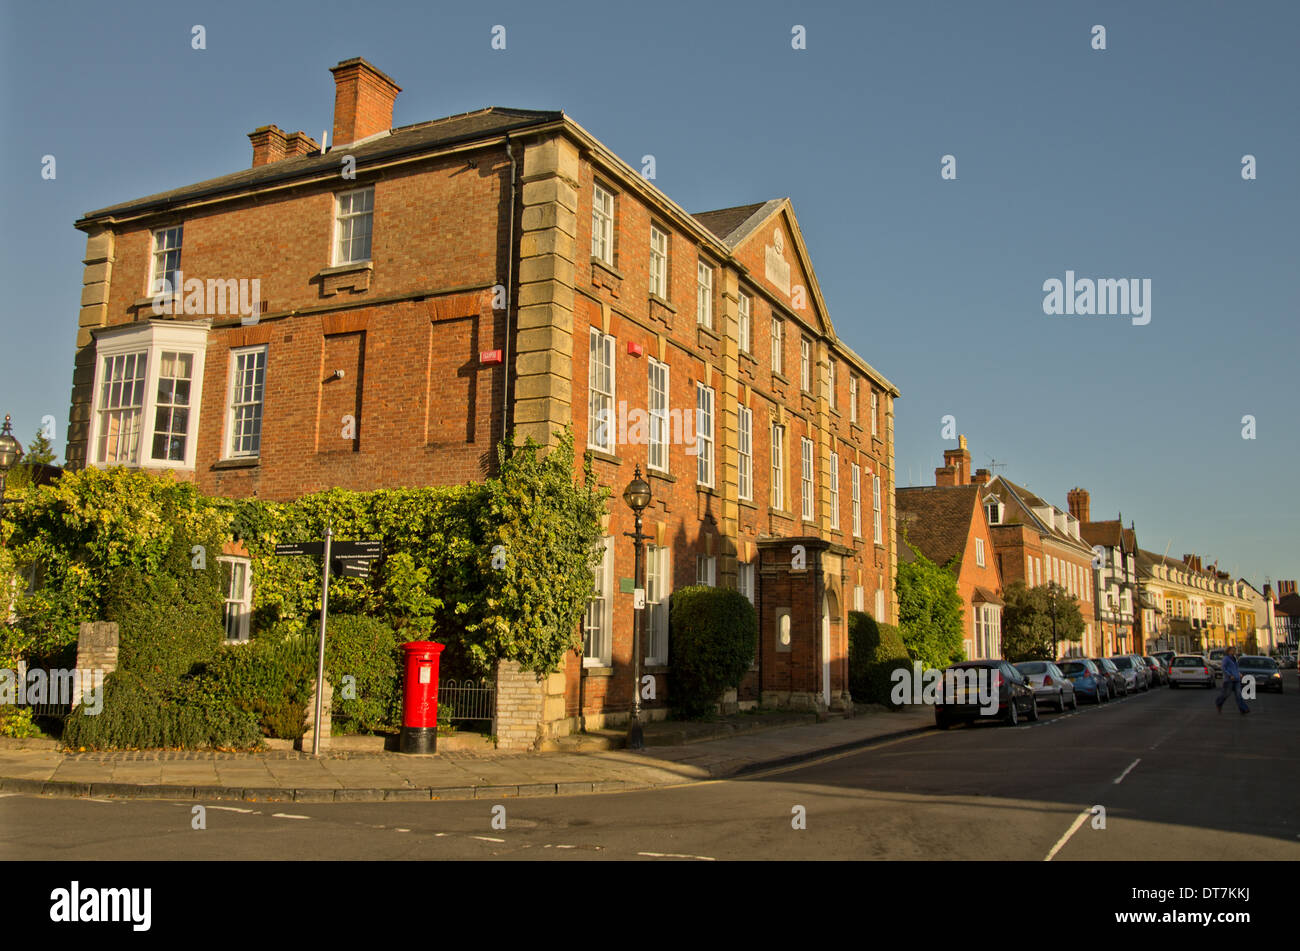 Georgian Building in Stratford on Avon at the junction of Old Town and Church Street - Stock Image